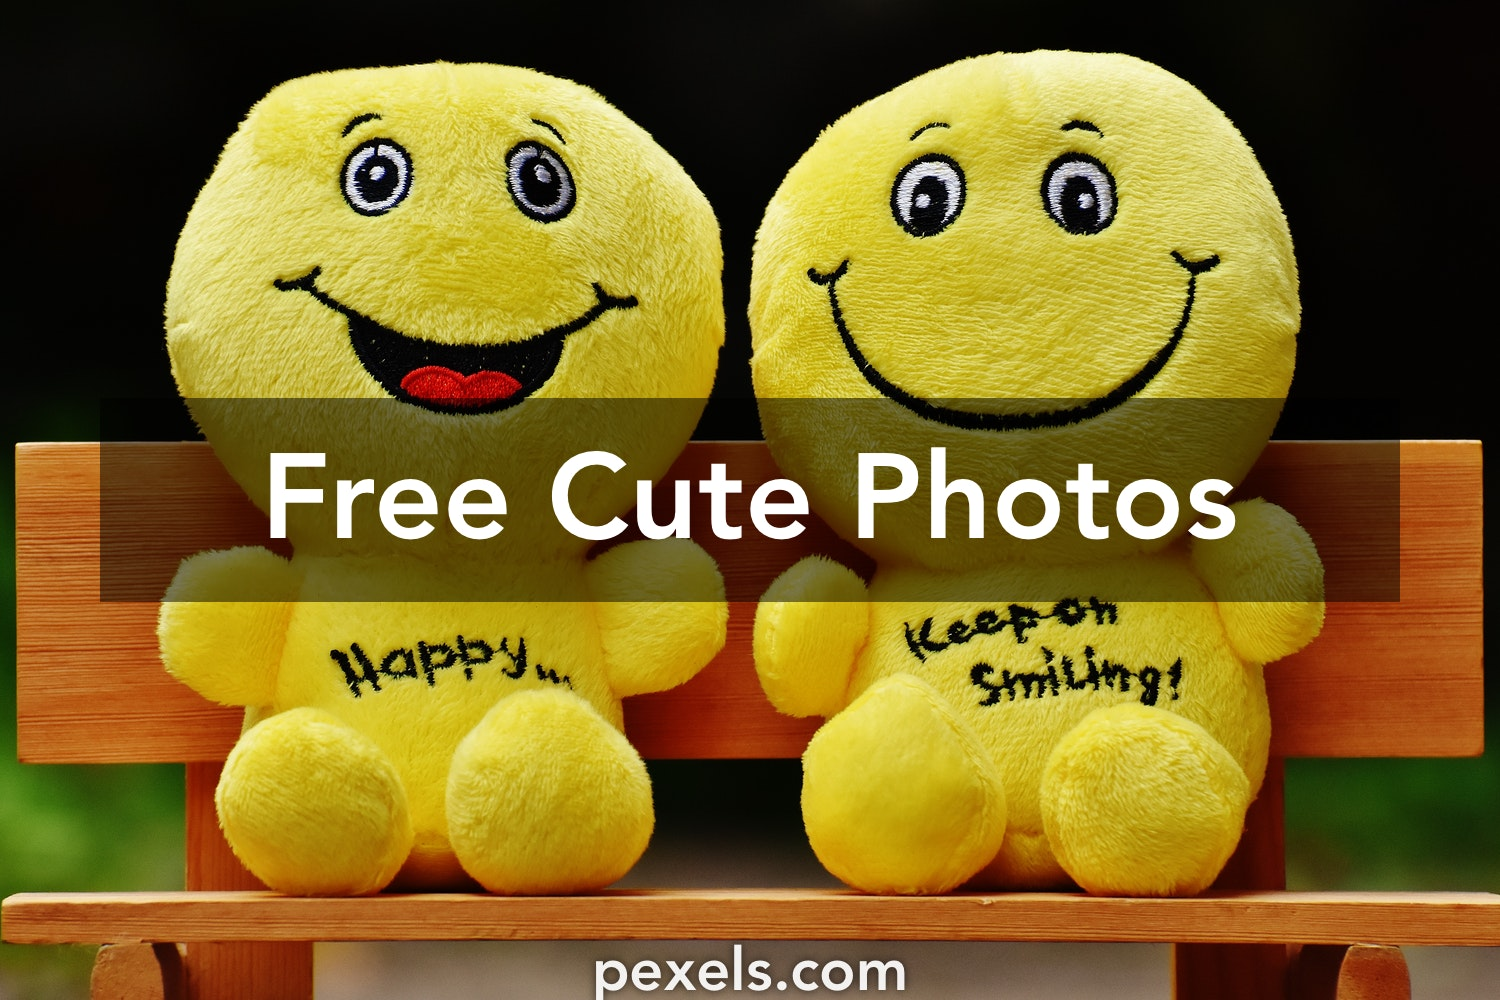 Cute pictures pexels free stock photos voltagebd Choice Image